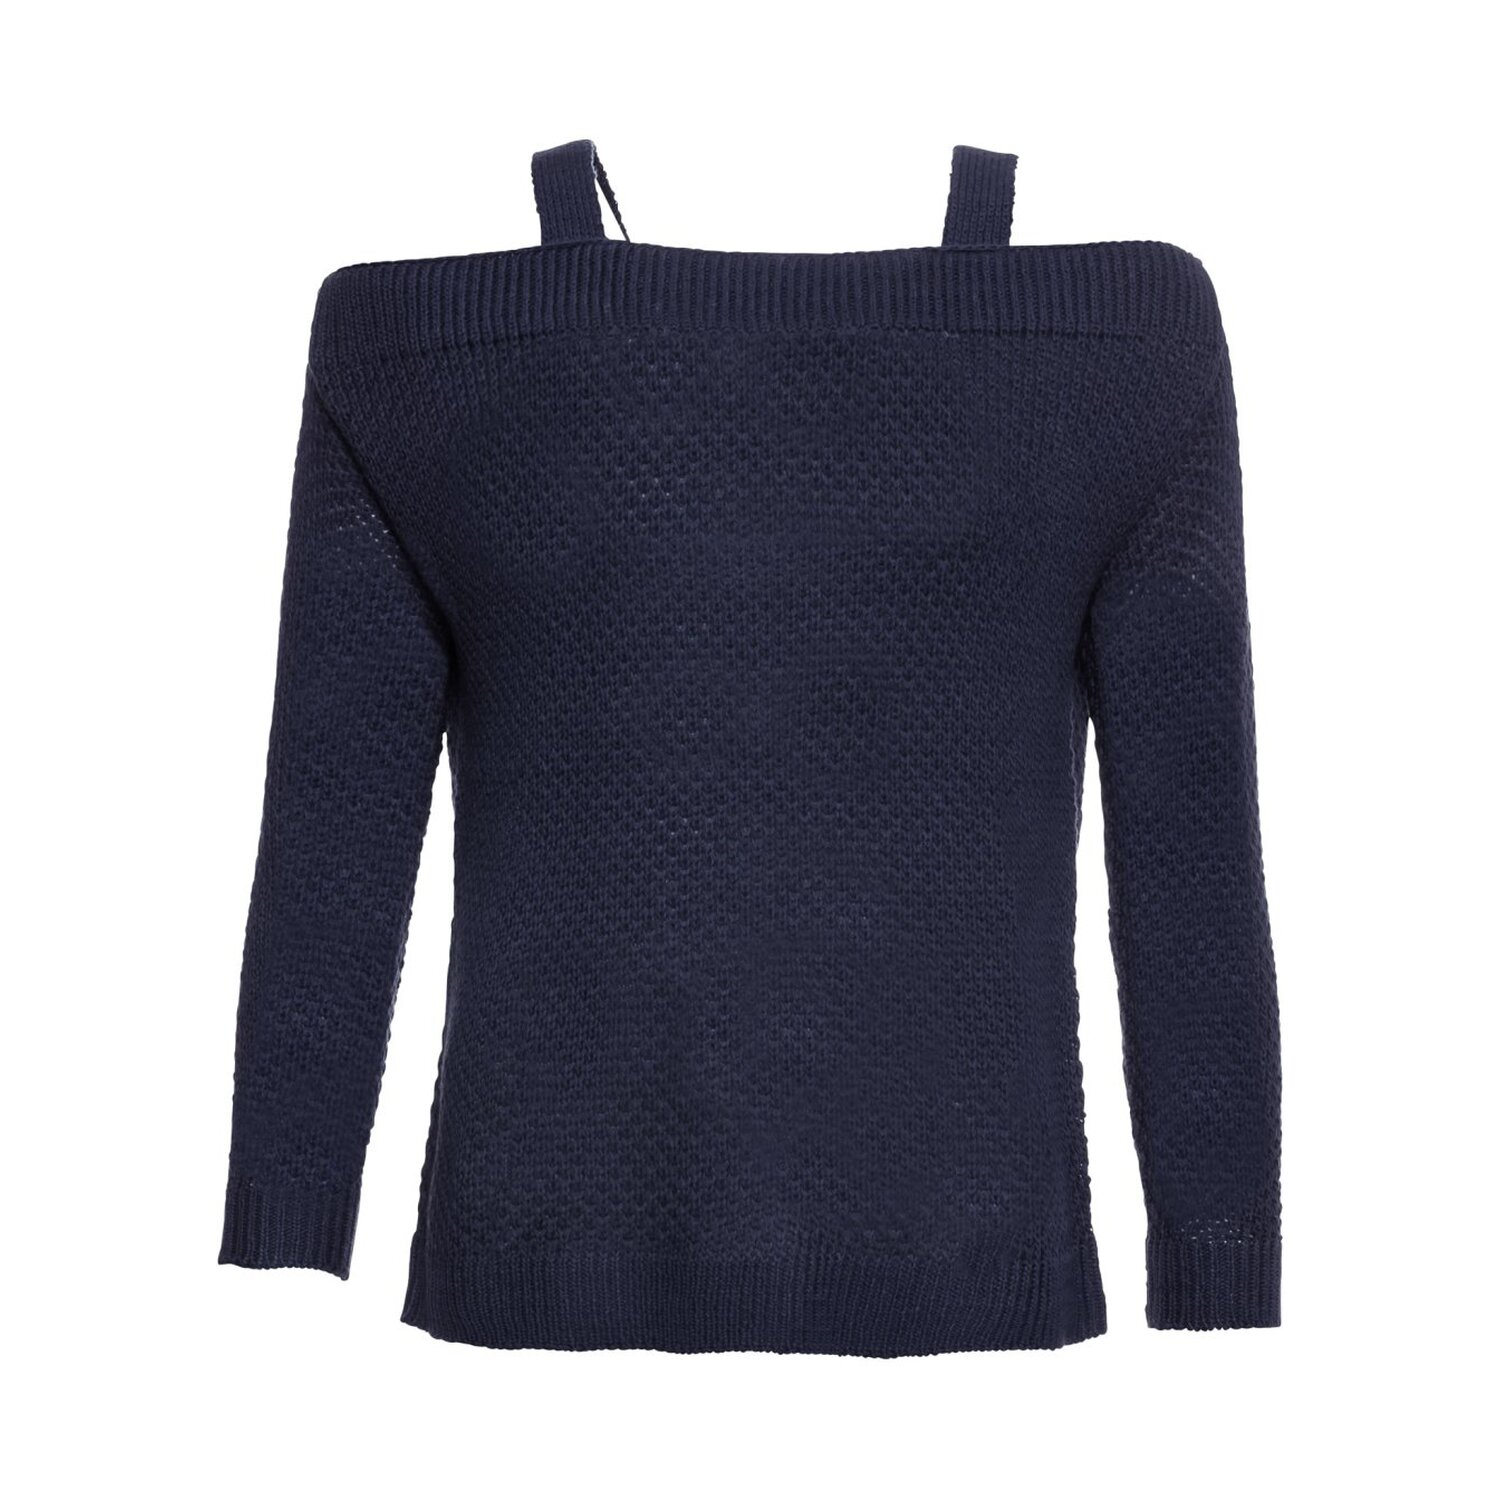 Damen Pullover mit Cut Outs, in Blau